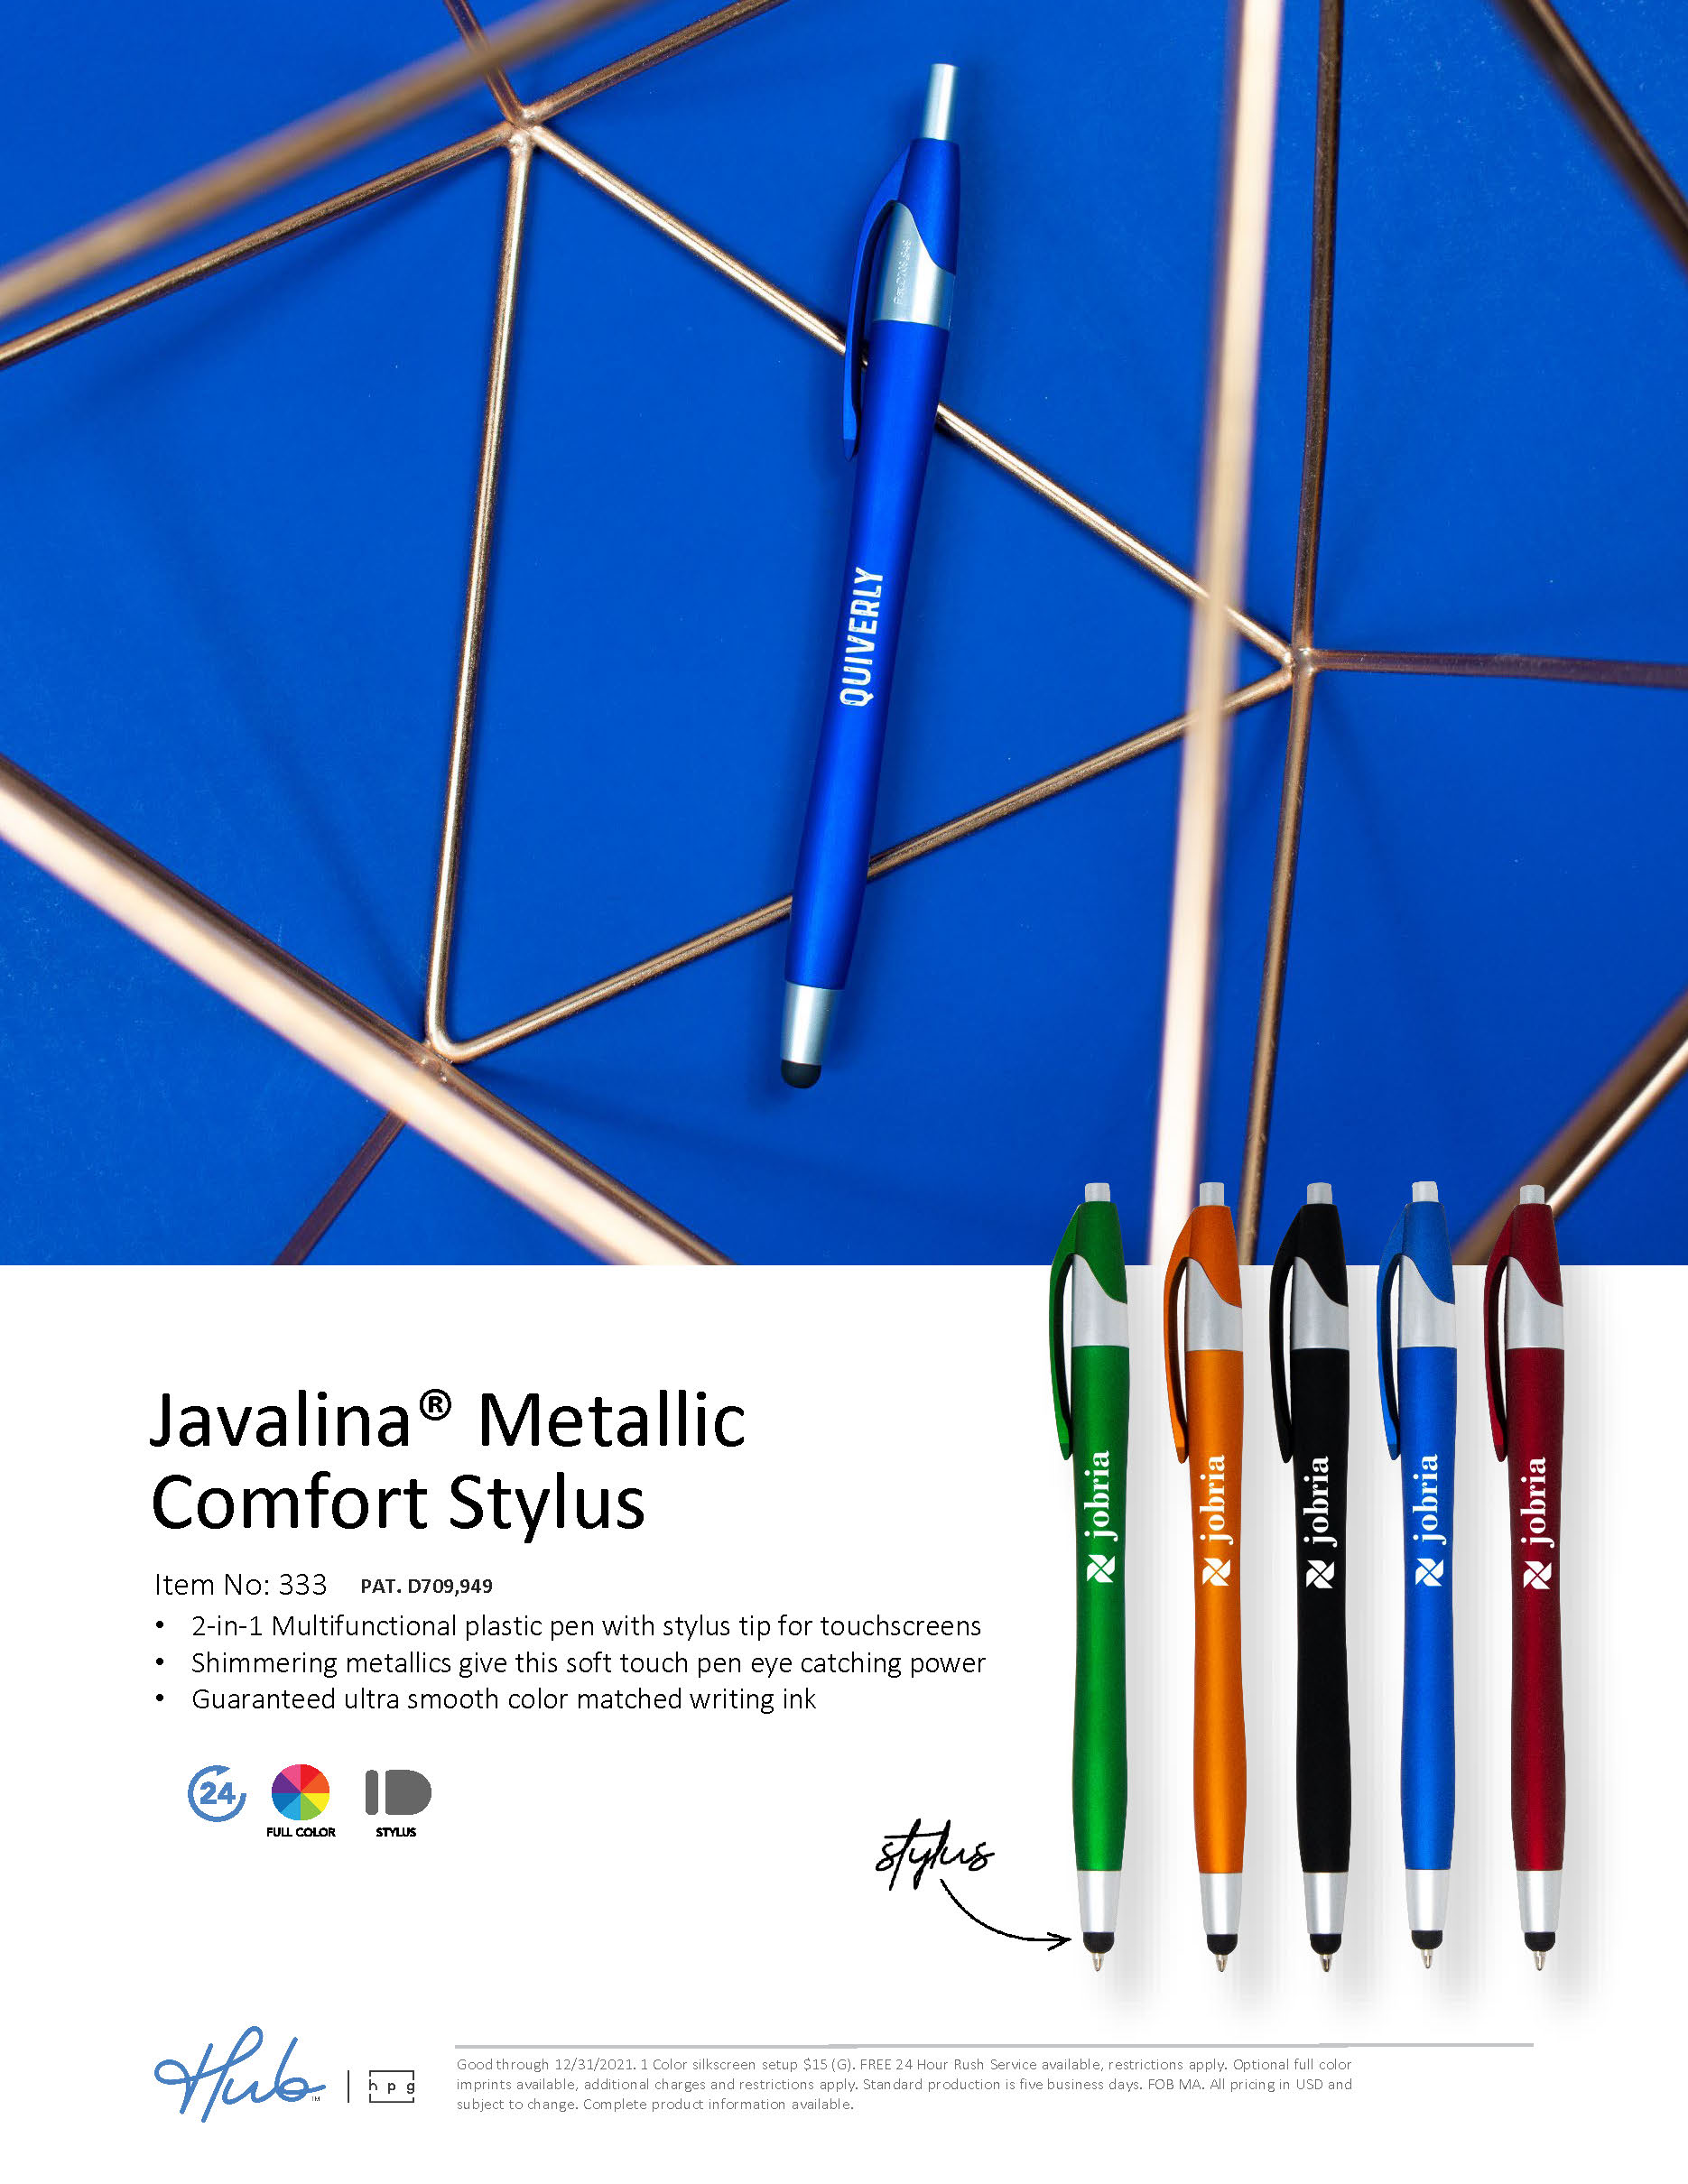 The NEW Javalina Metallic Comfort Stylus pen with a soft touch finish